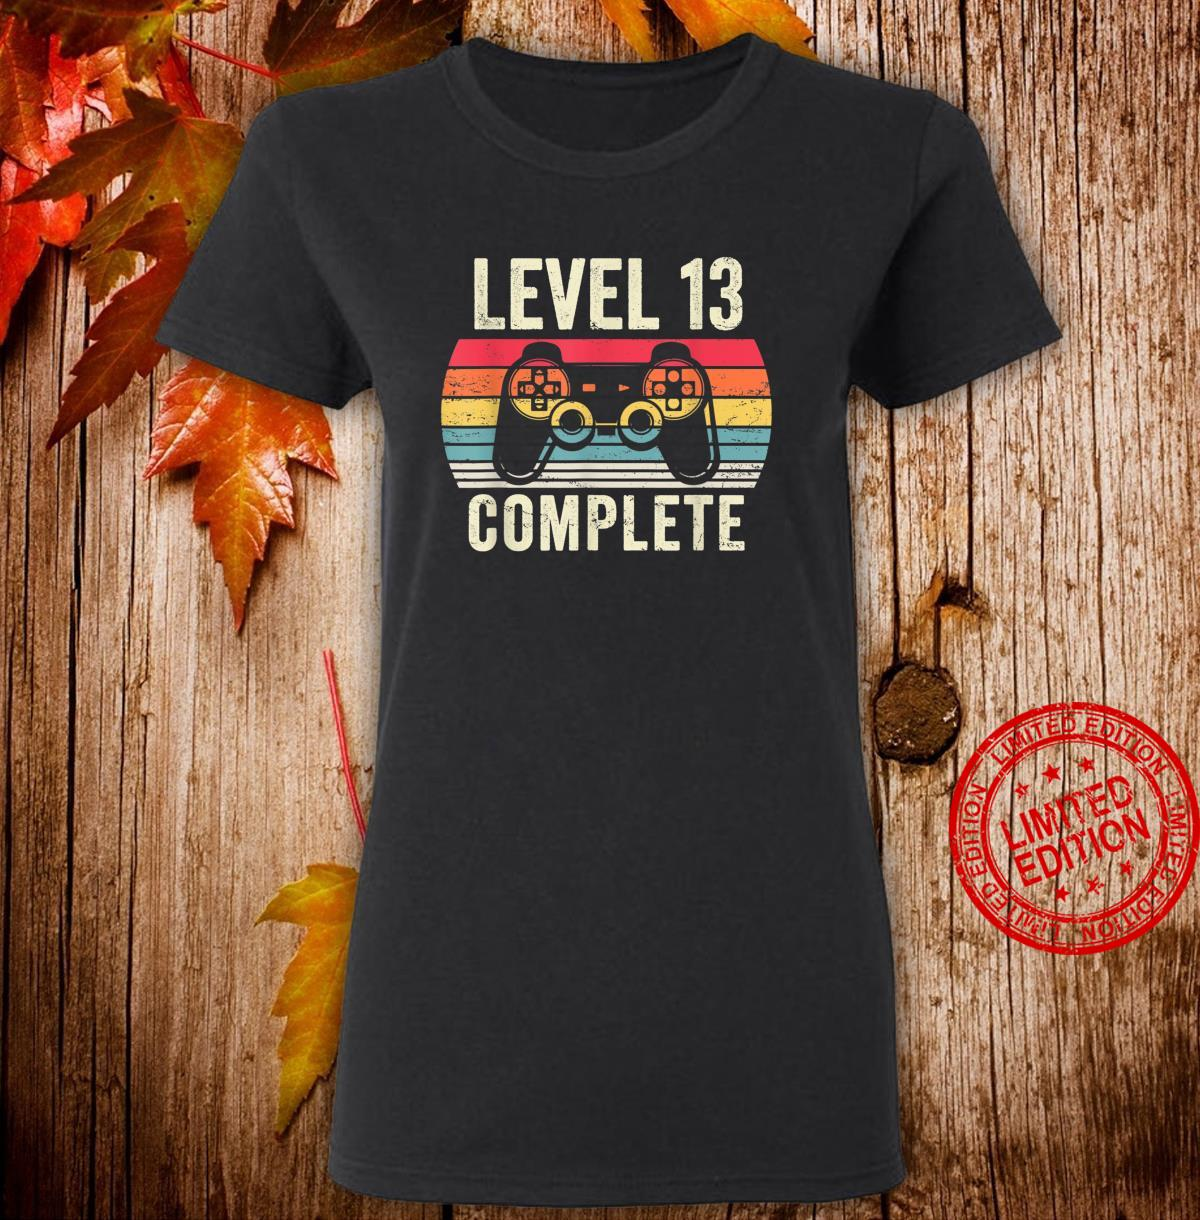 Level 13 Complete Shirt 13 Year Old Vintage 2007 Shirt ladies tee